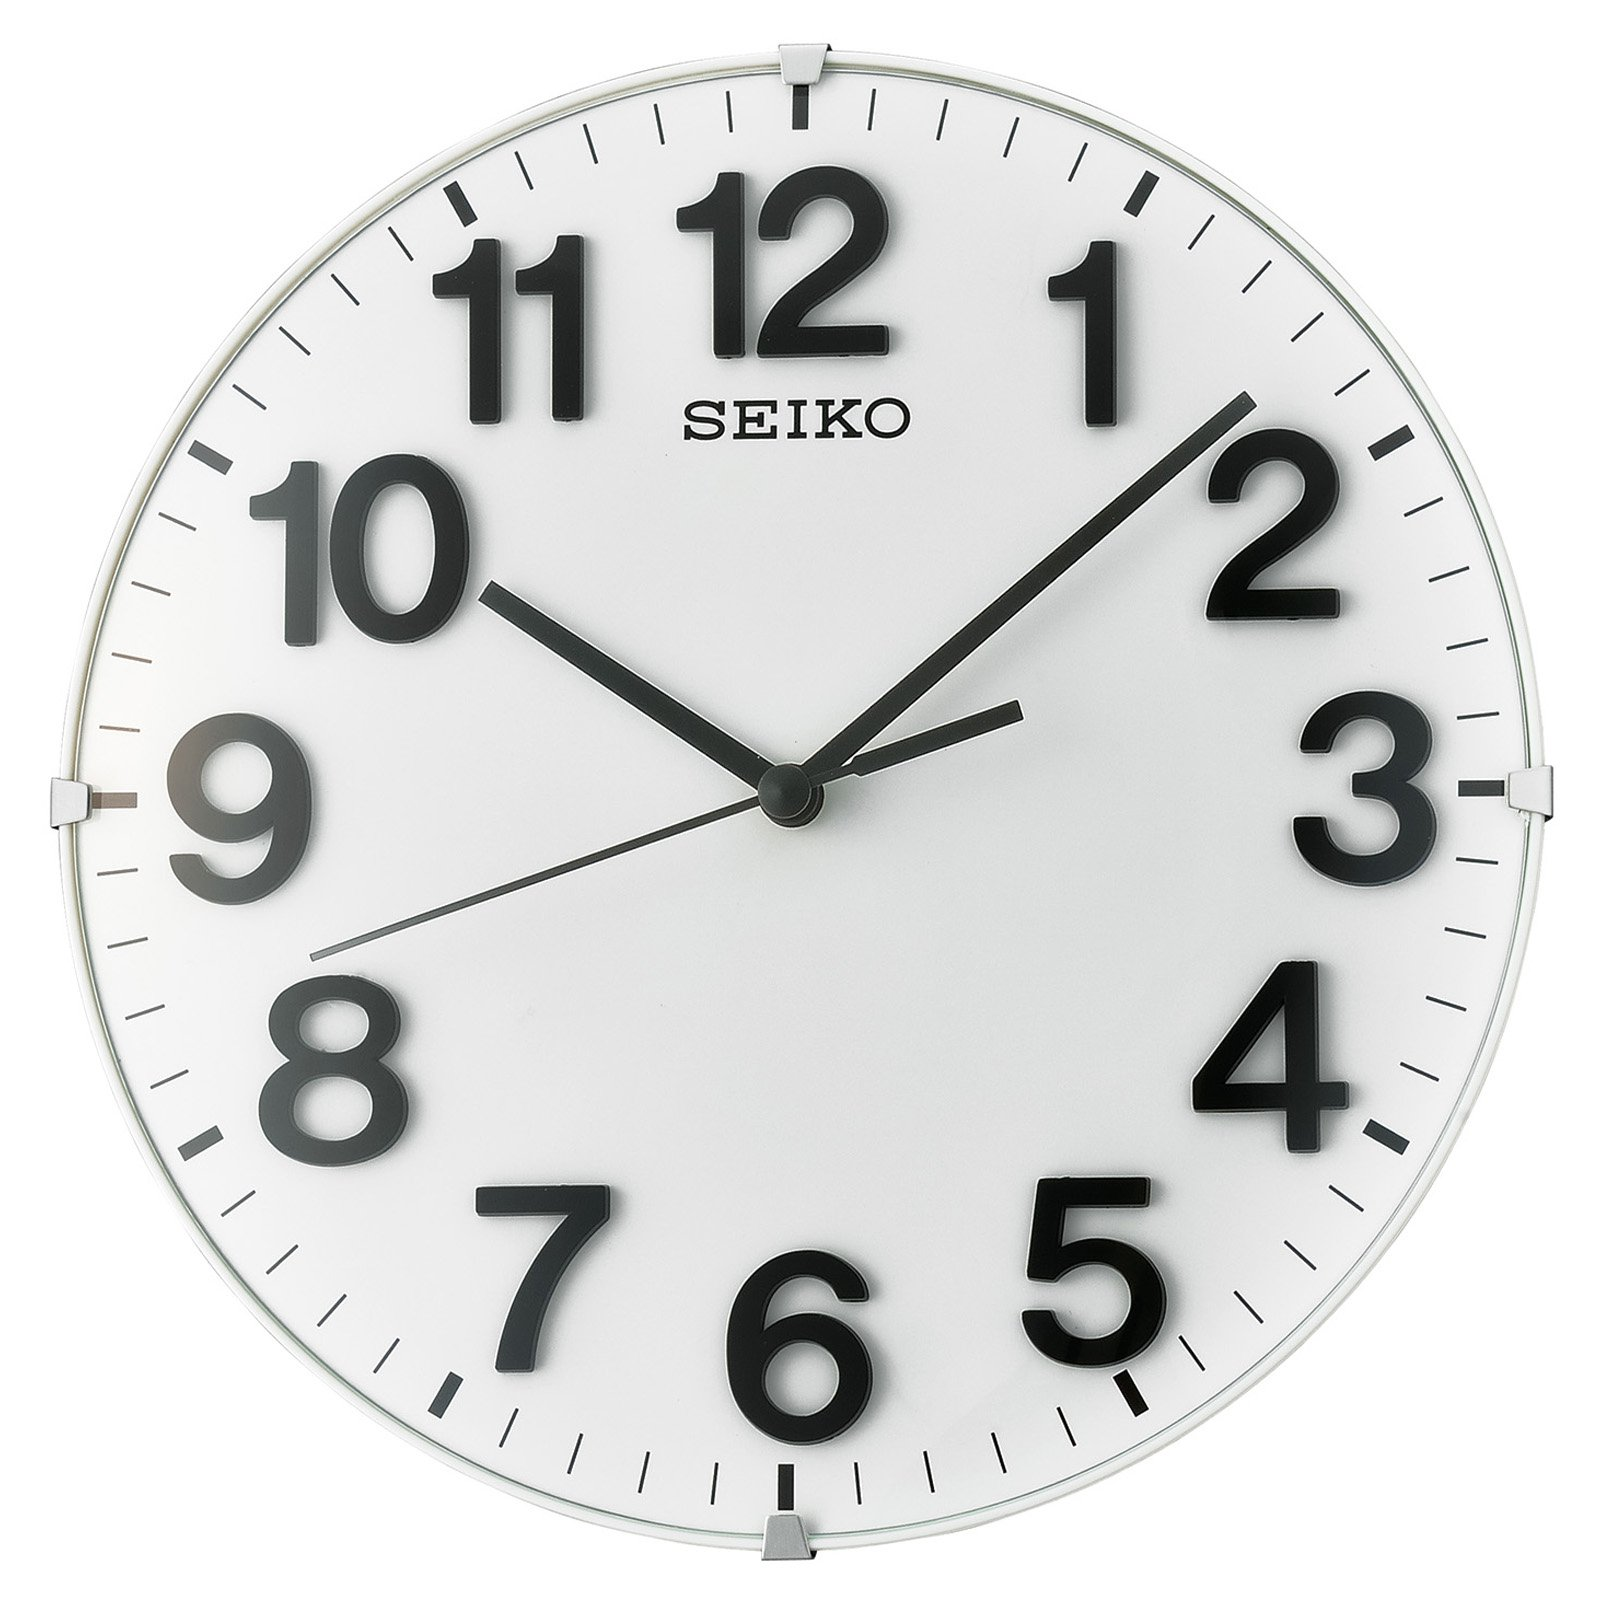 Seiko Classic Wall Clock With Quiet Sweep Second Hand   8.25 In. Diameter